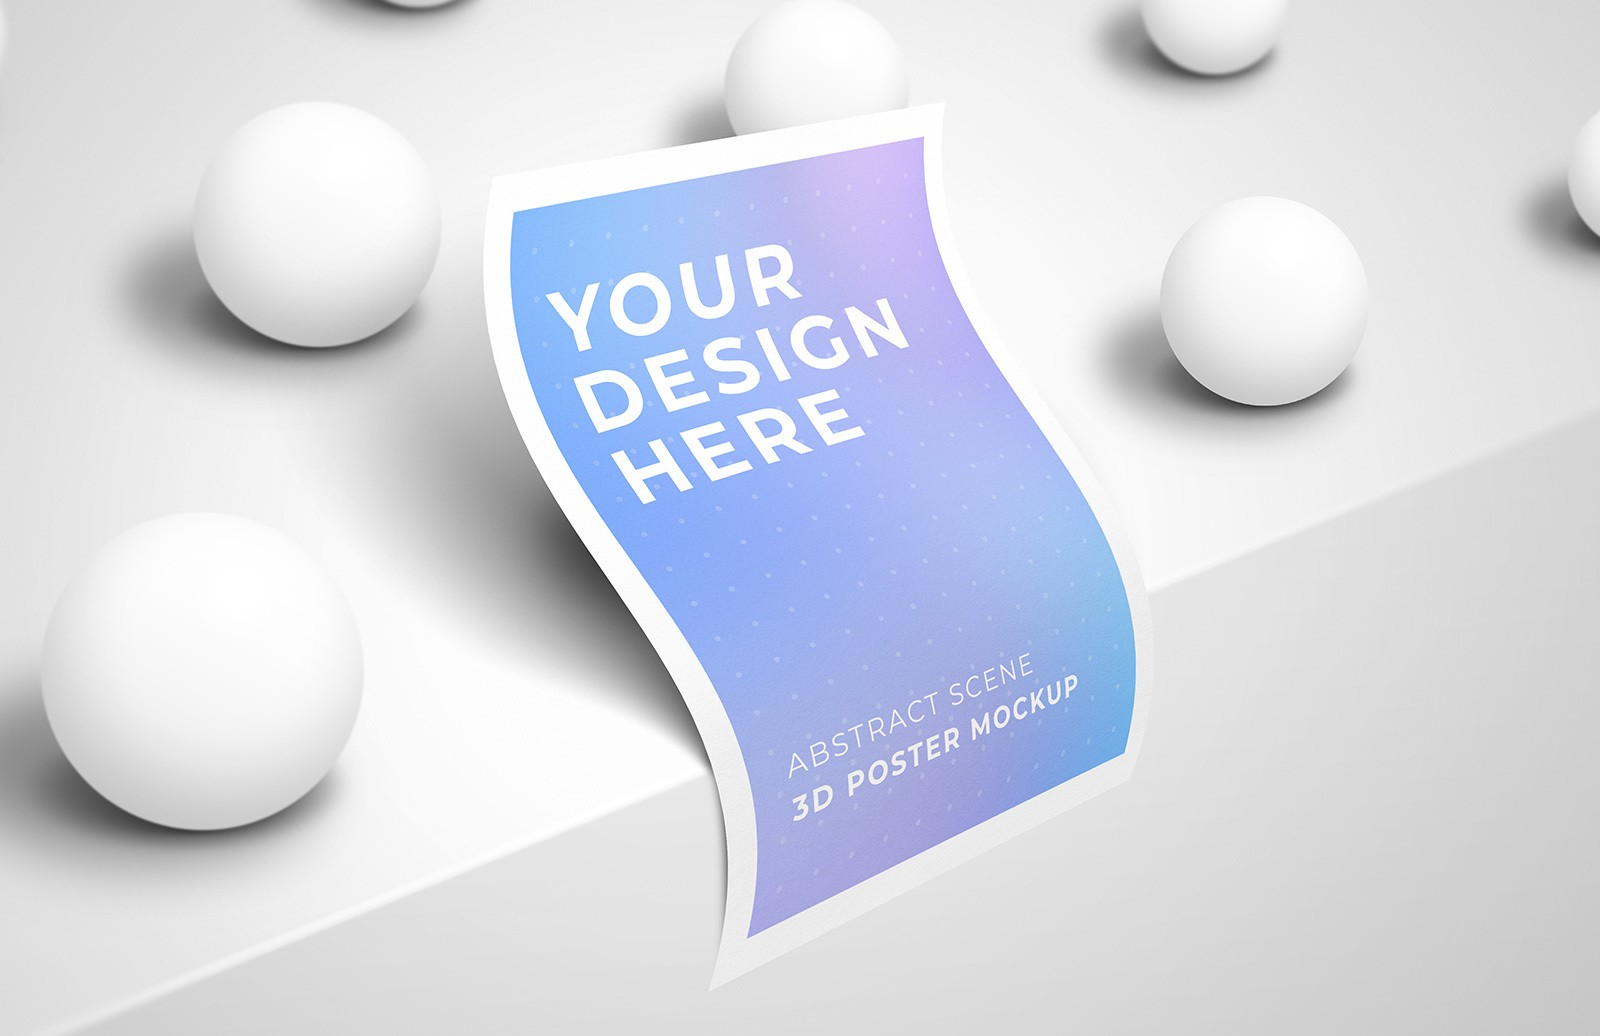 Abstract Scene 3 D Poster Mockup Preview 1